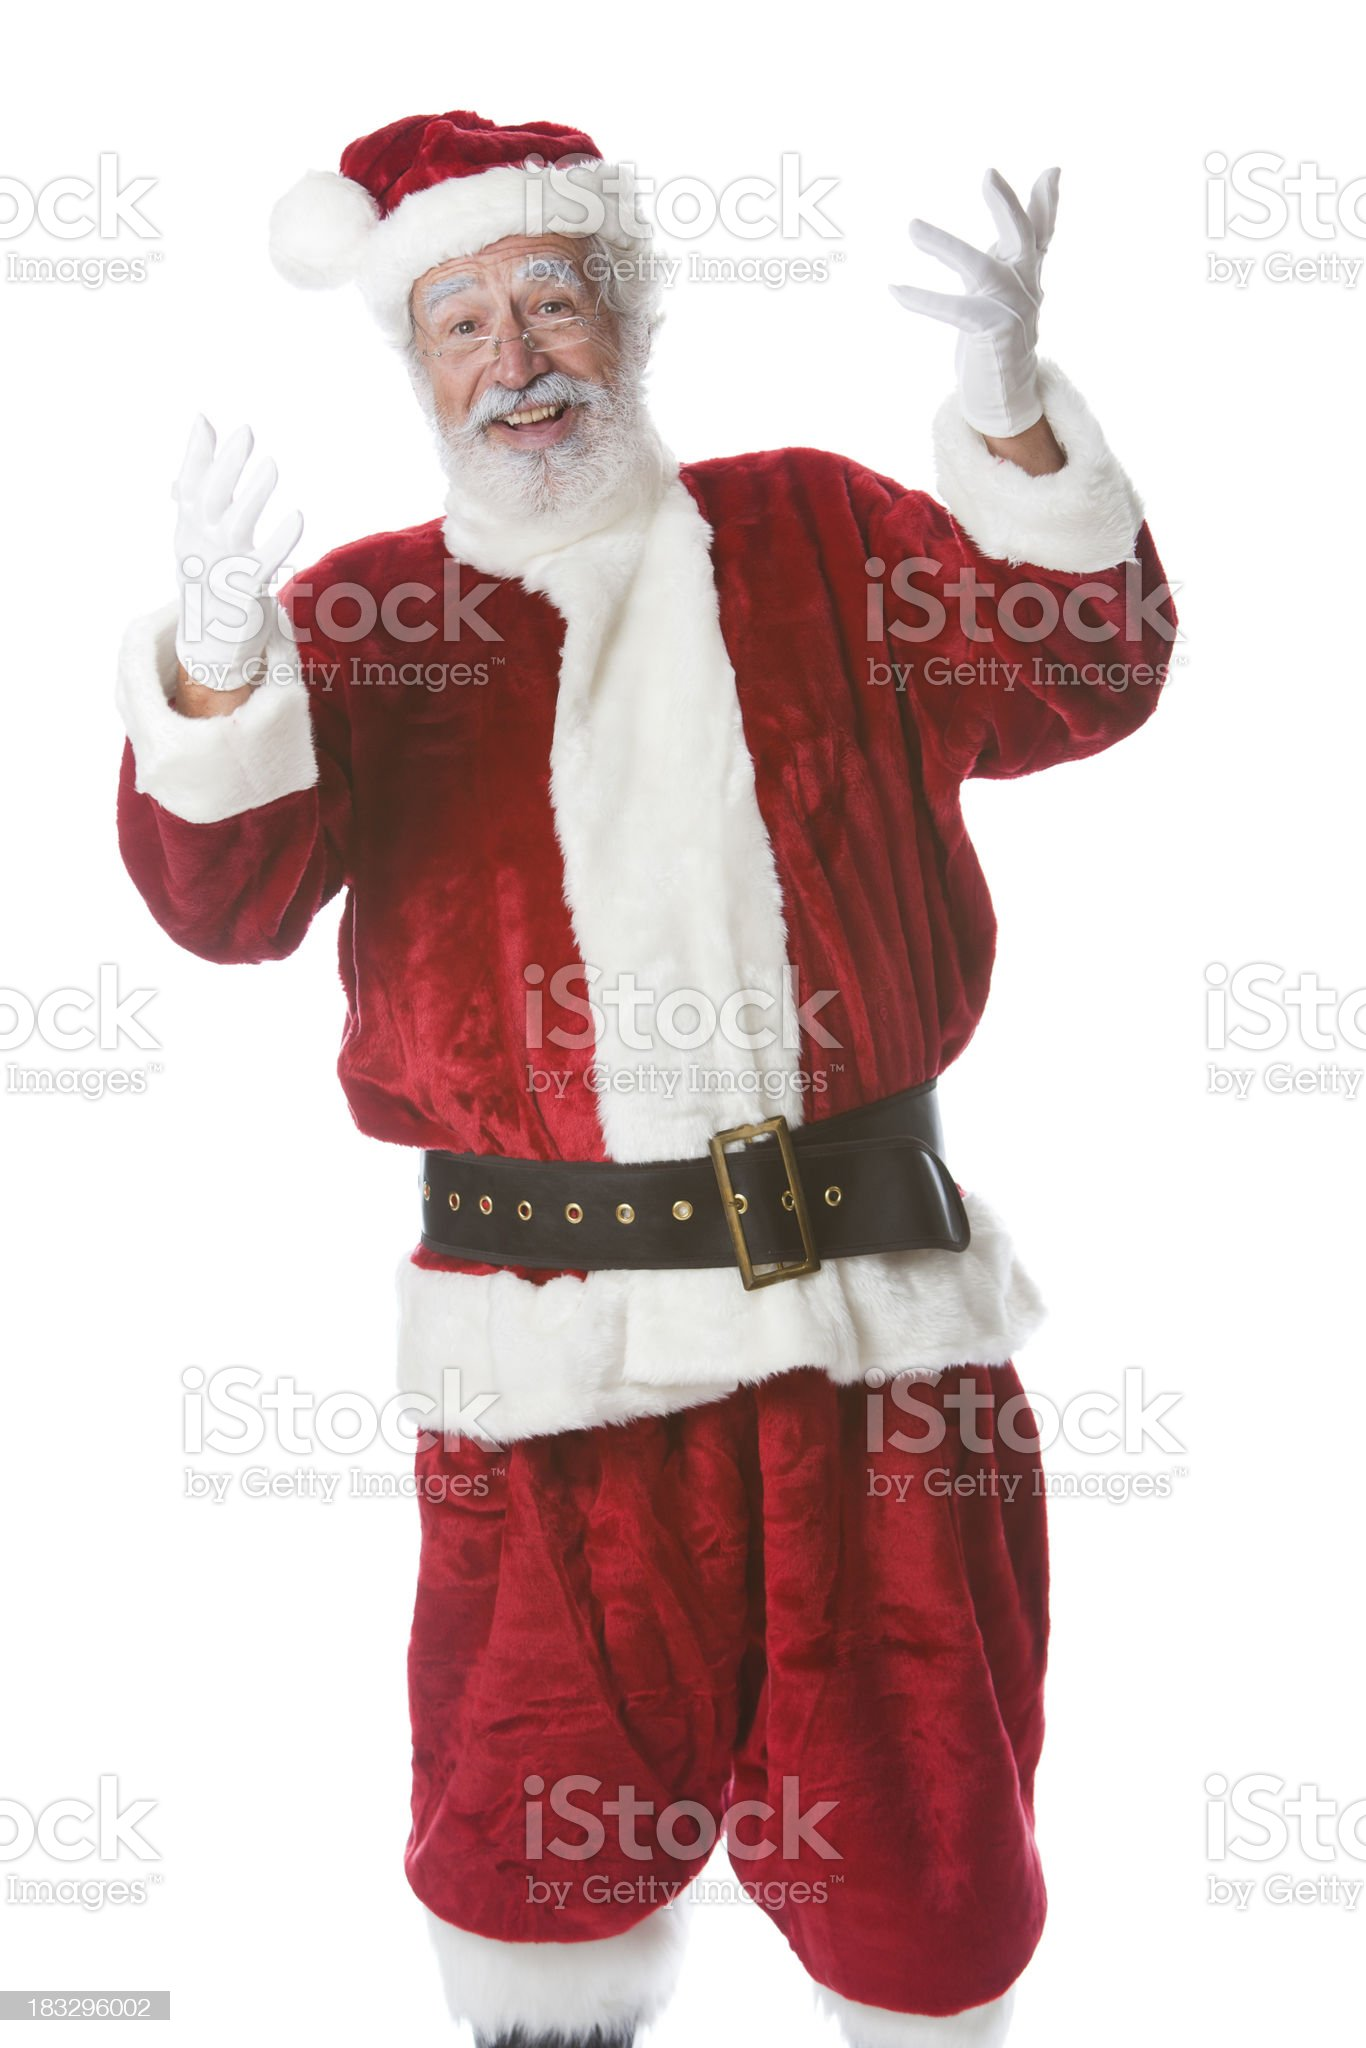 Jolly Santa from the Waist Up Gestures Excitedly royalty-free stock photo